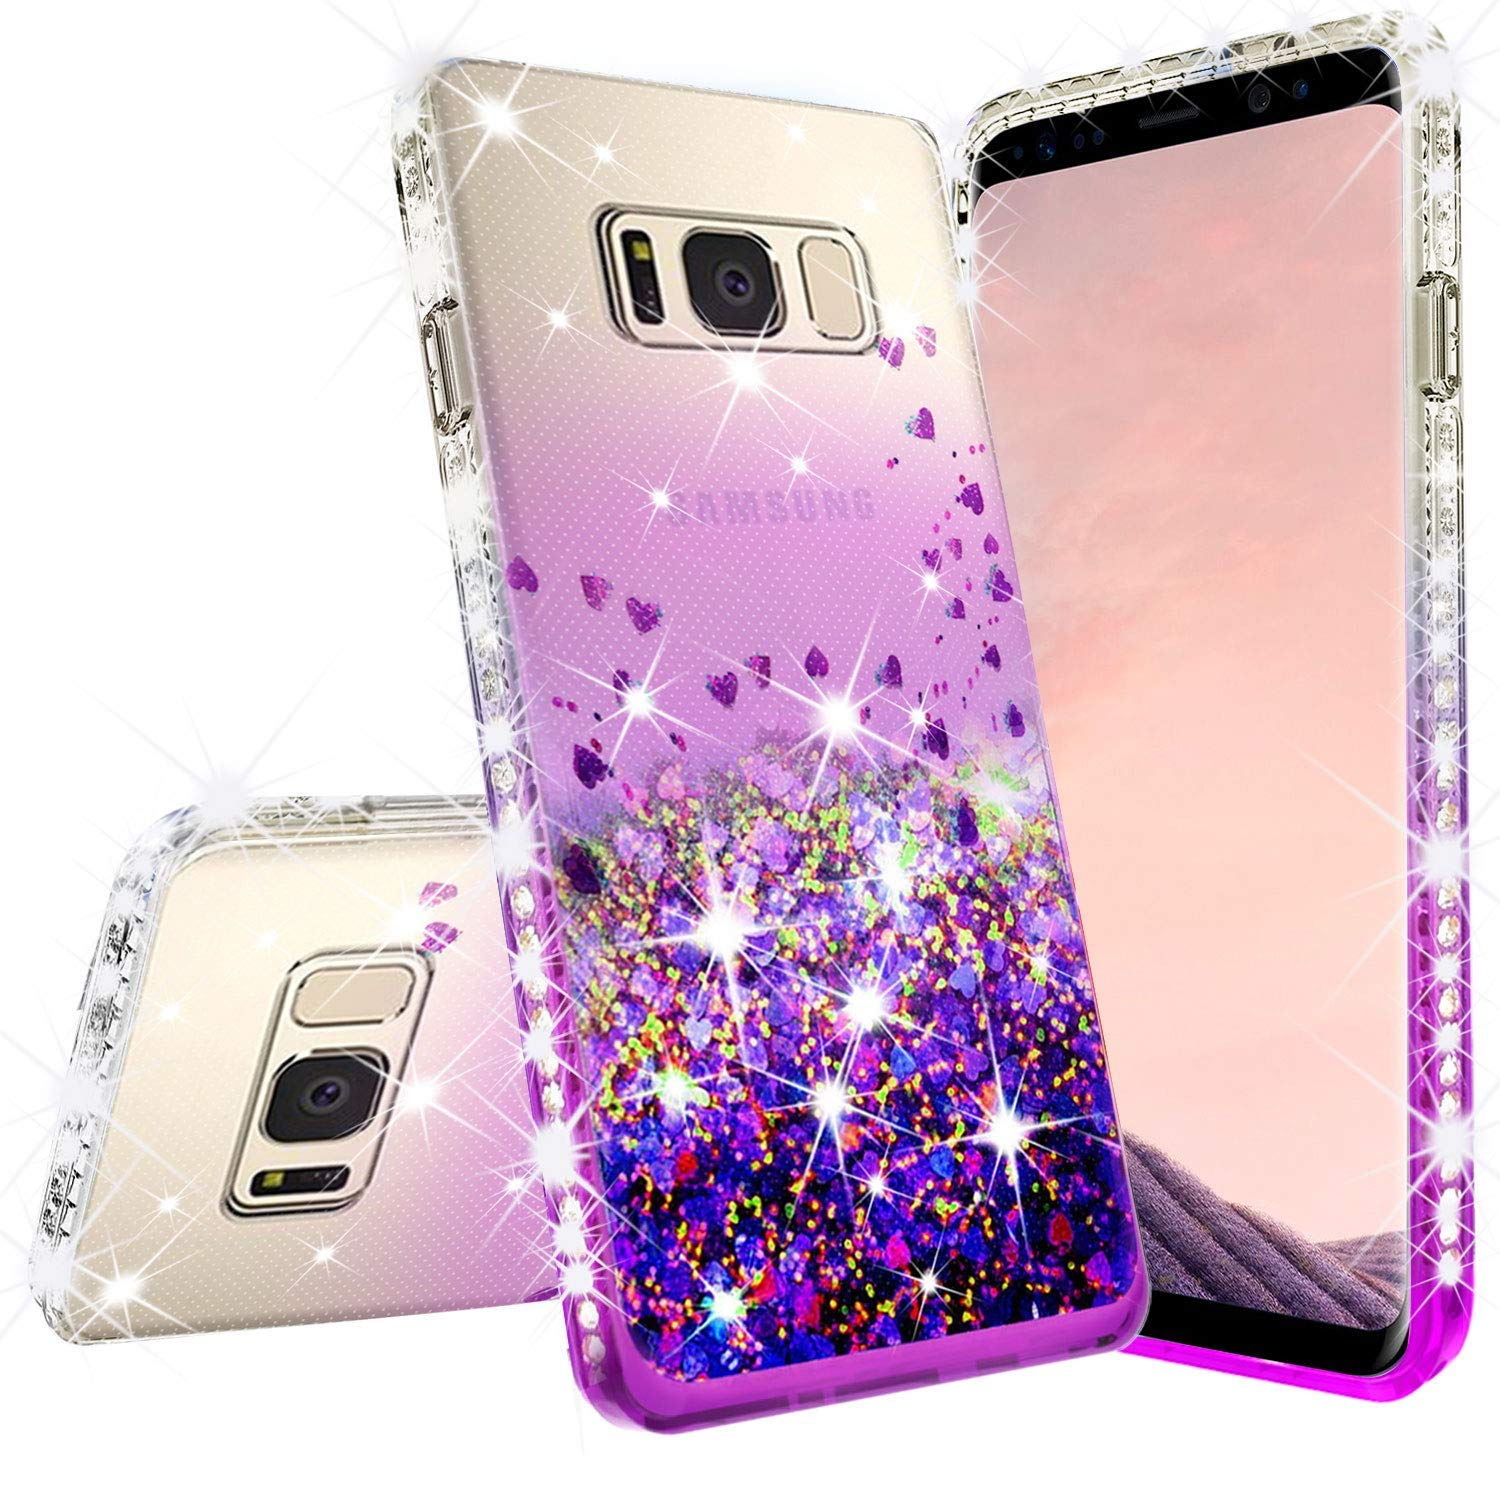 Samsung Galaxy S9 Casew/[Temper Glass Screen Protector] Liquid Glitter Phone Case Waterfall Floating Quicksand Bling Sparkle Cute Protective Girls Women Cover for Galaxy S9 - Purple/Clear